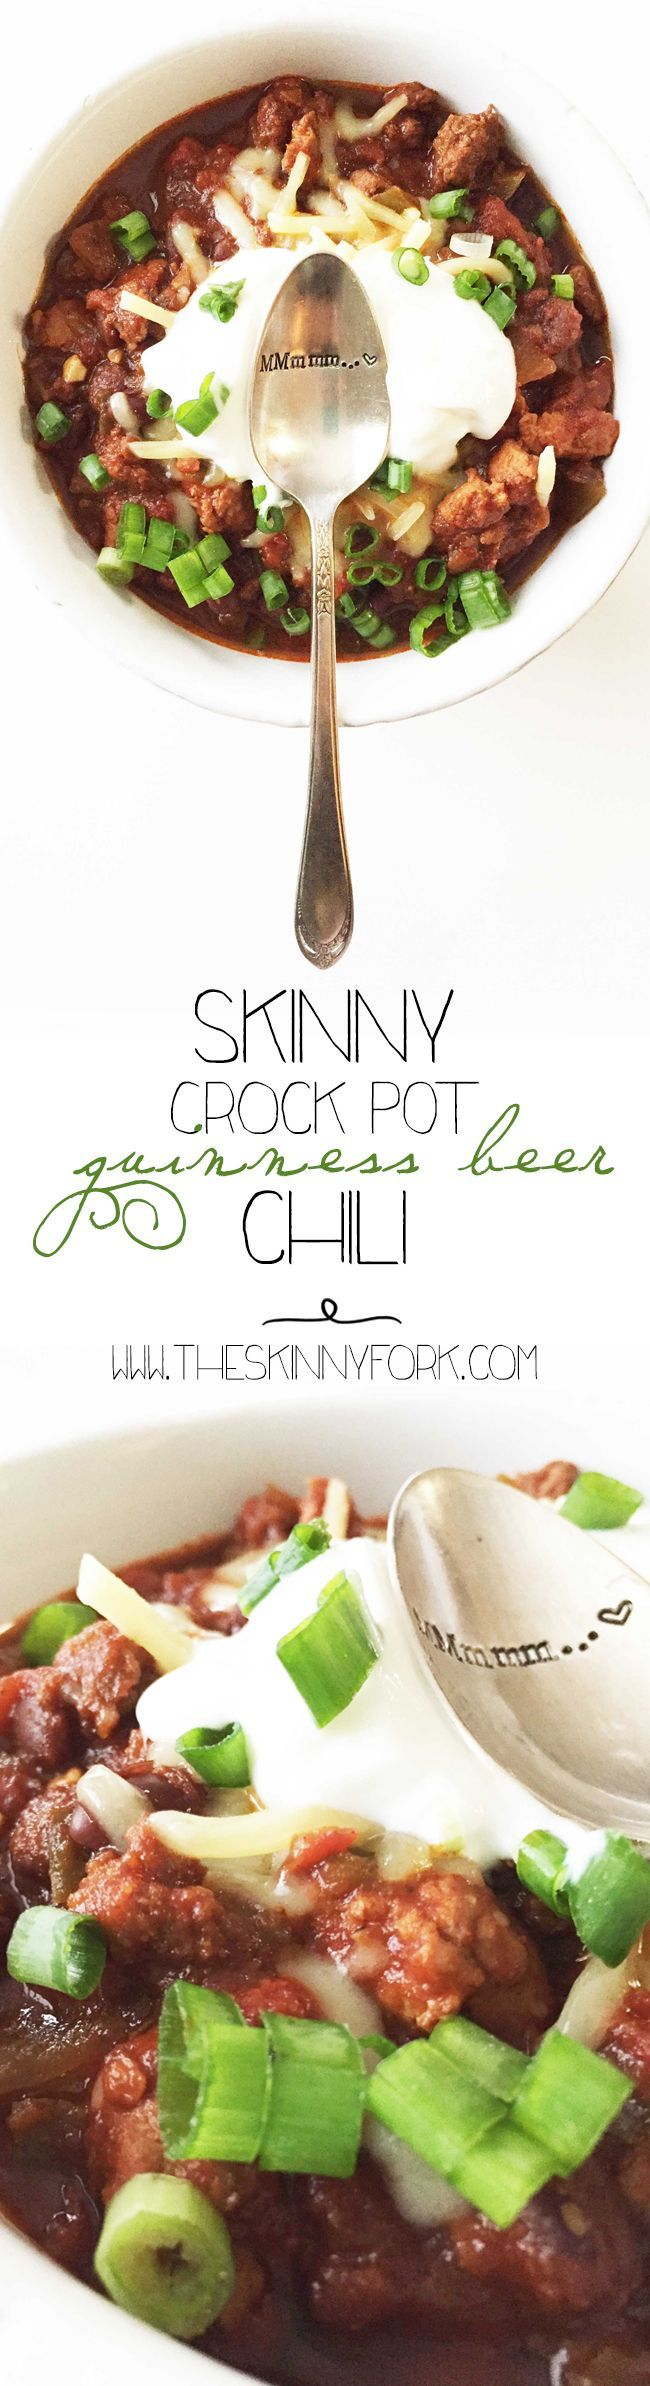 Skinny Crock Pot Guinness Beer Chili - Or as I like to call it... Irish chili! Low carb, beer friendly, and full of Bar-B-Q love! TheSkinnyFork.com | Skinny & Healthy Recipes